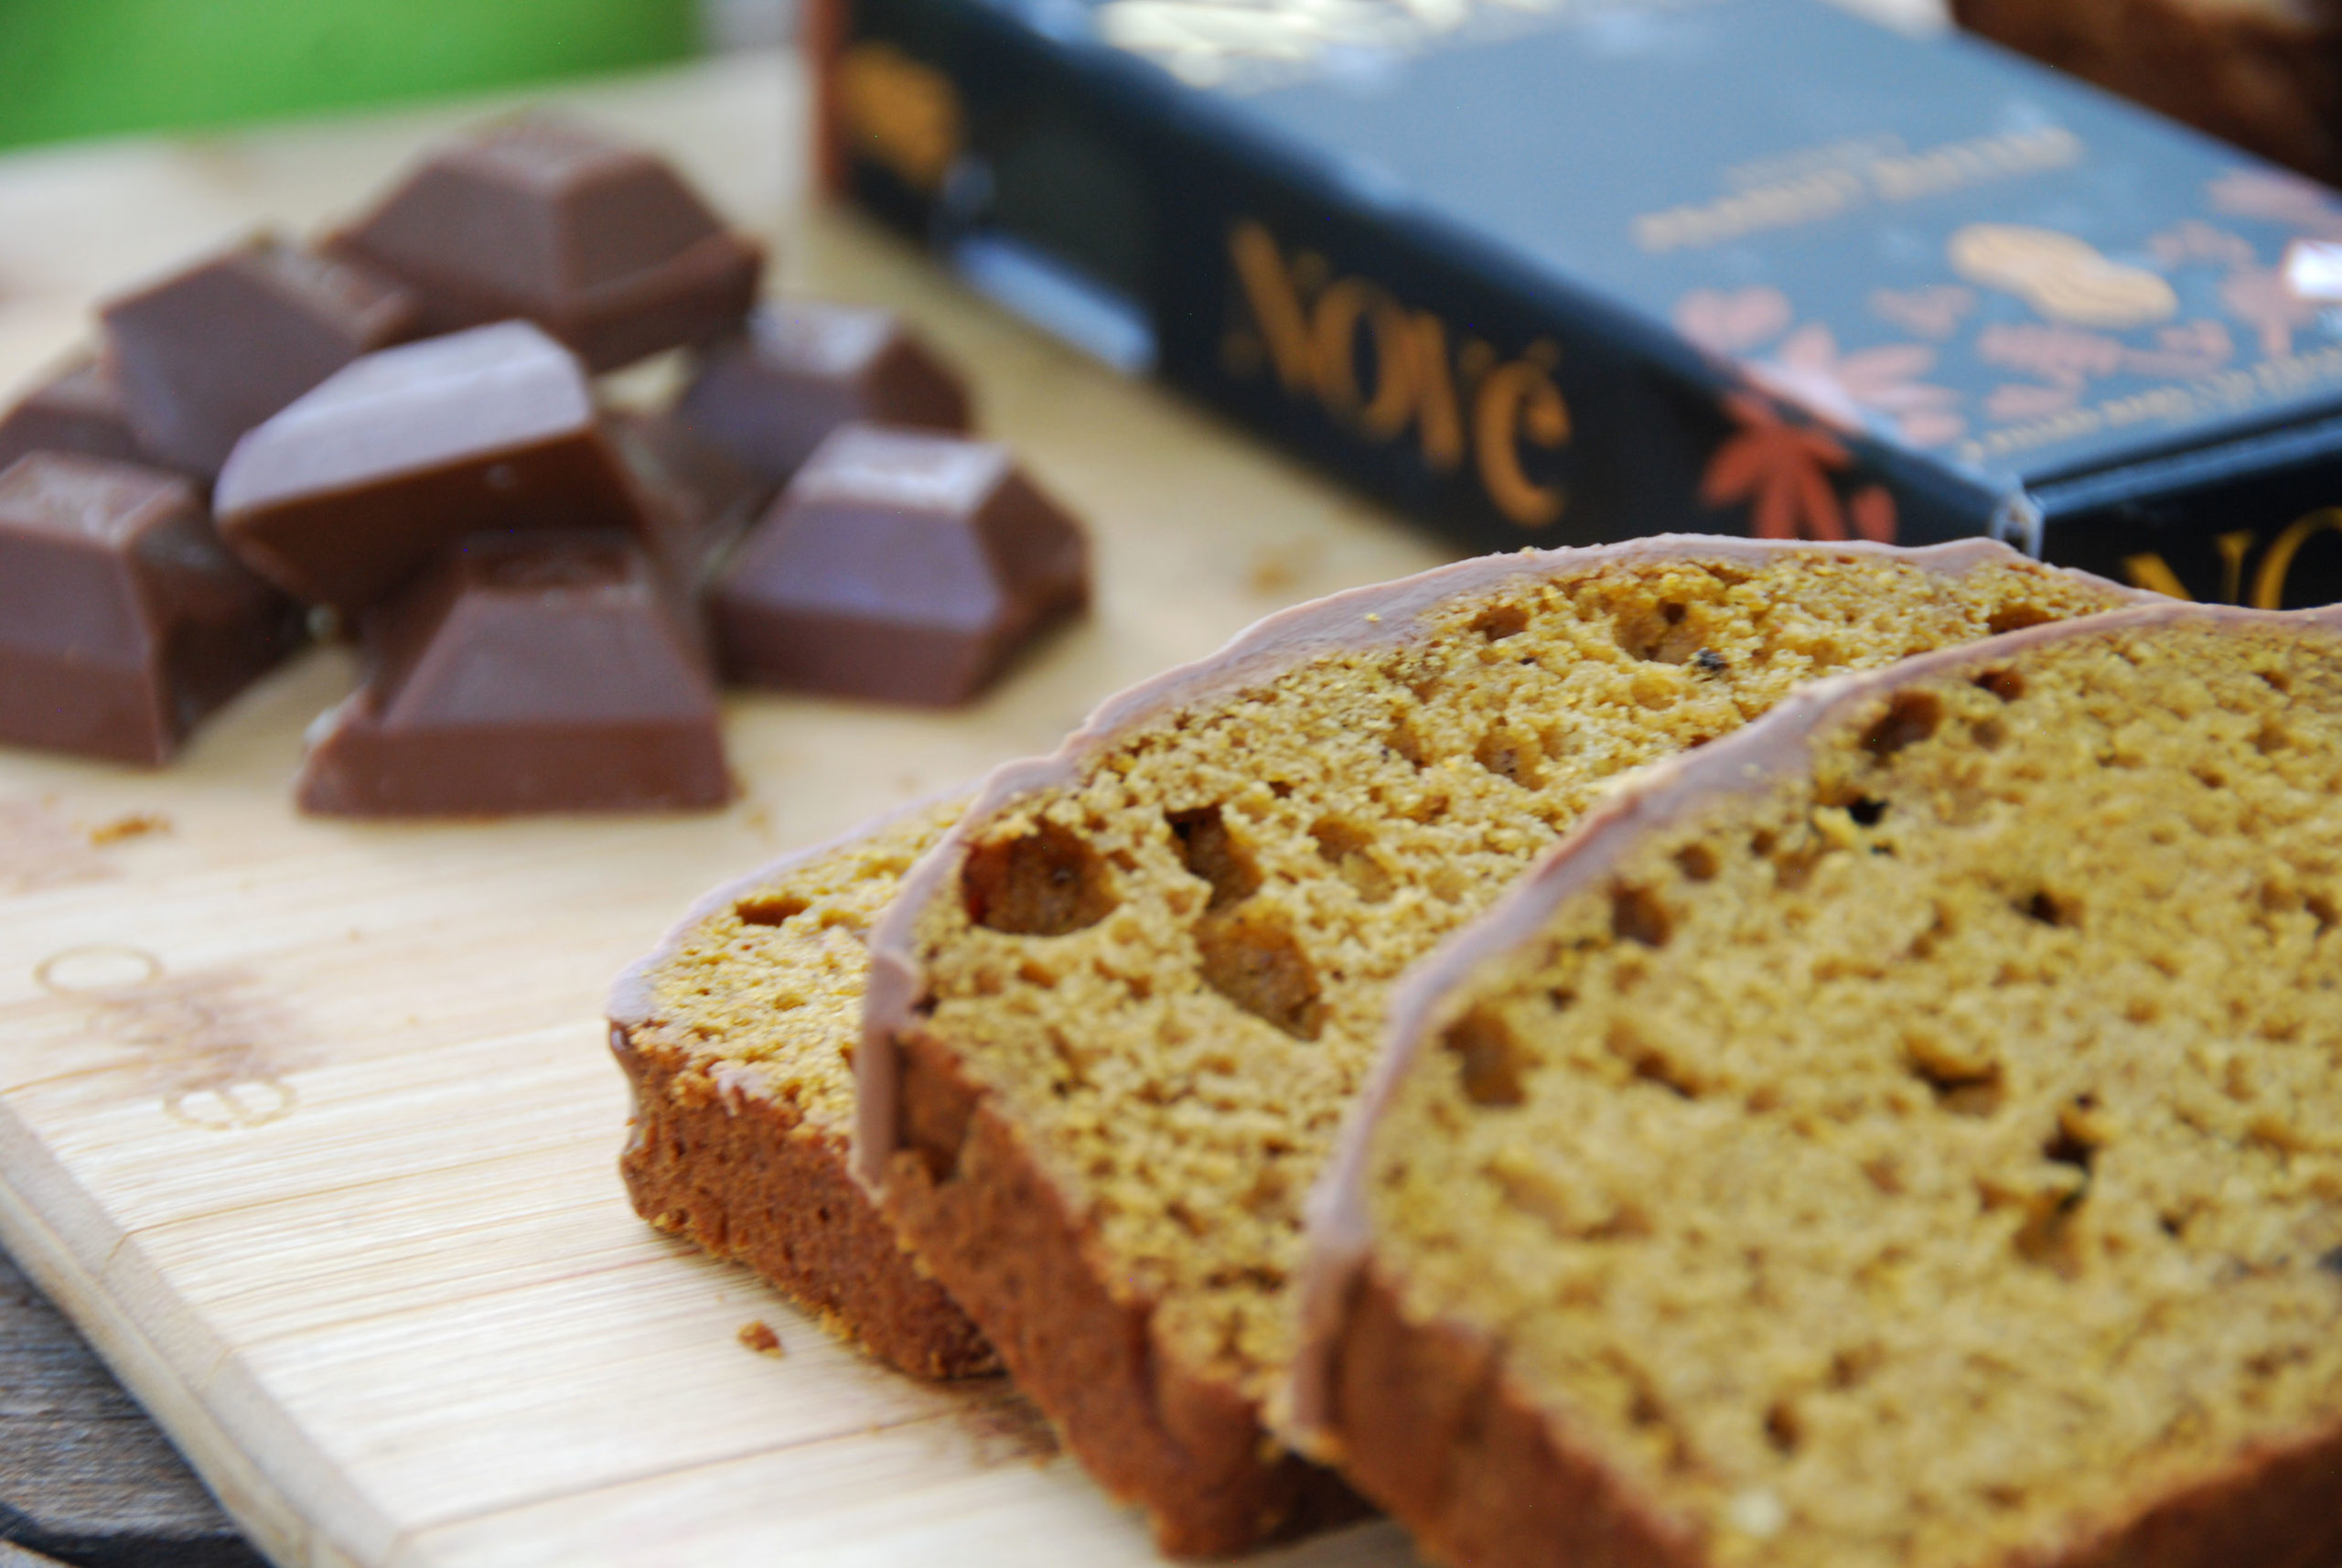 Cannabis-Infused Pumpkin Bread slices resting on a wood surface next to a Nove Honey Peanut Butter bar.